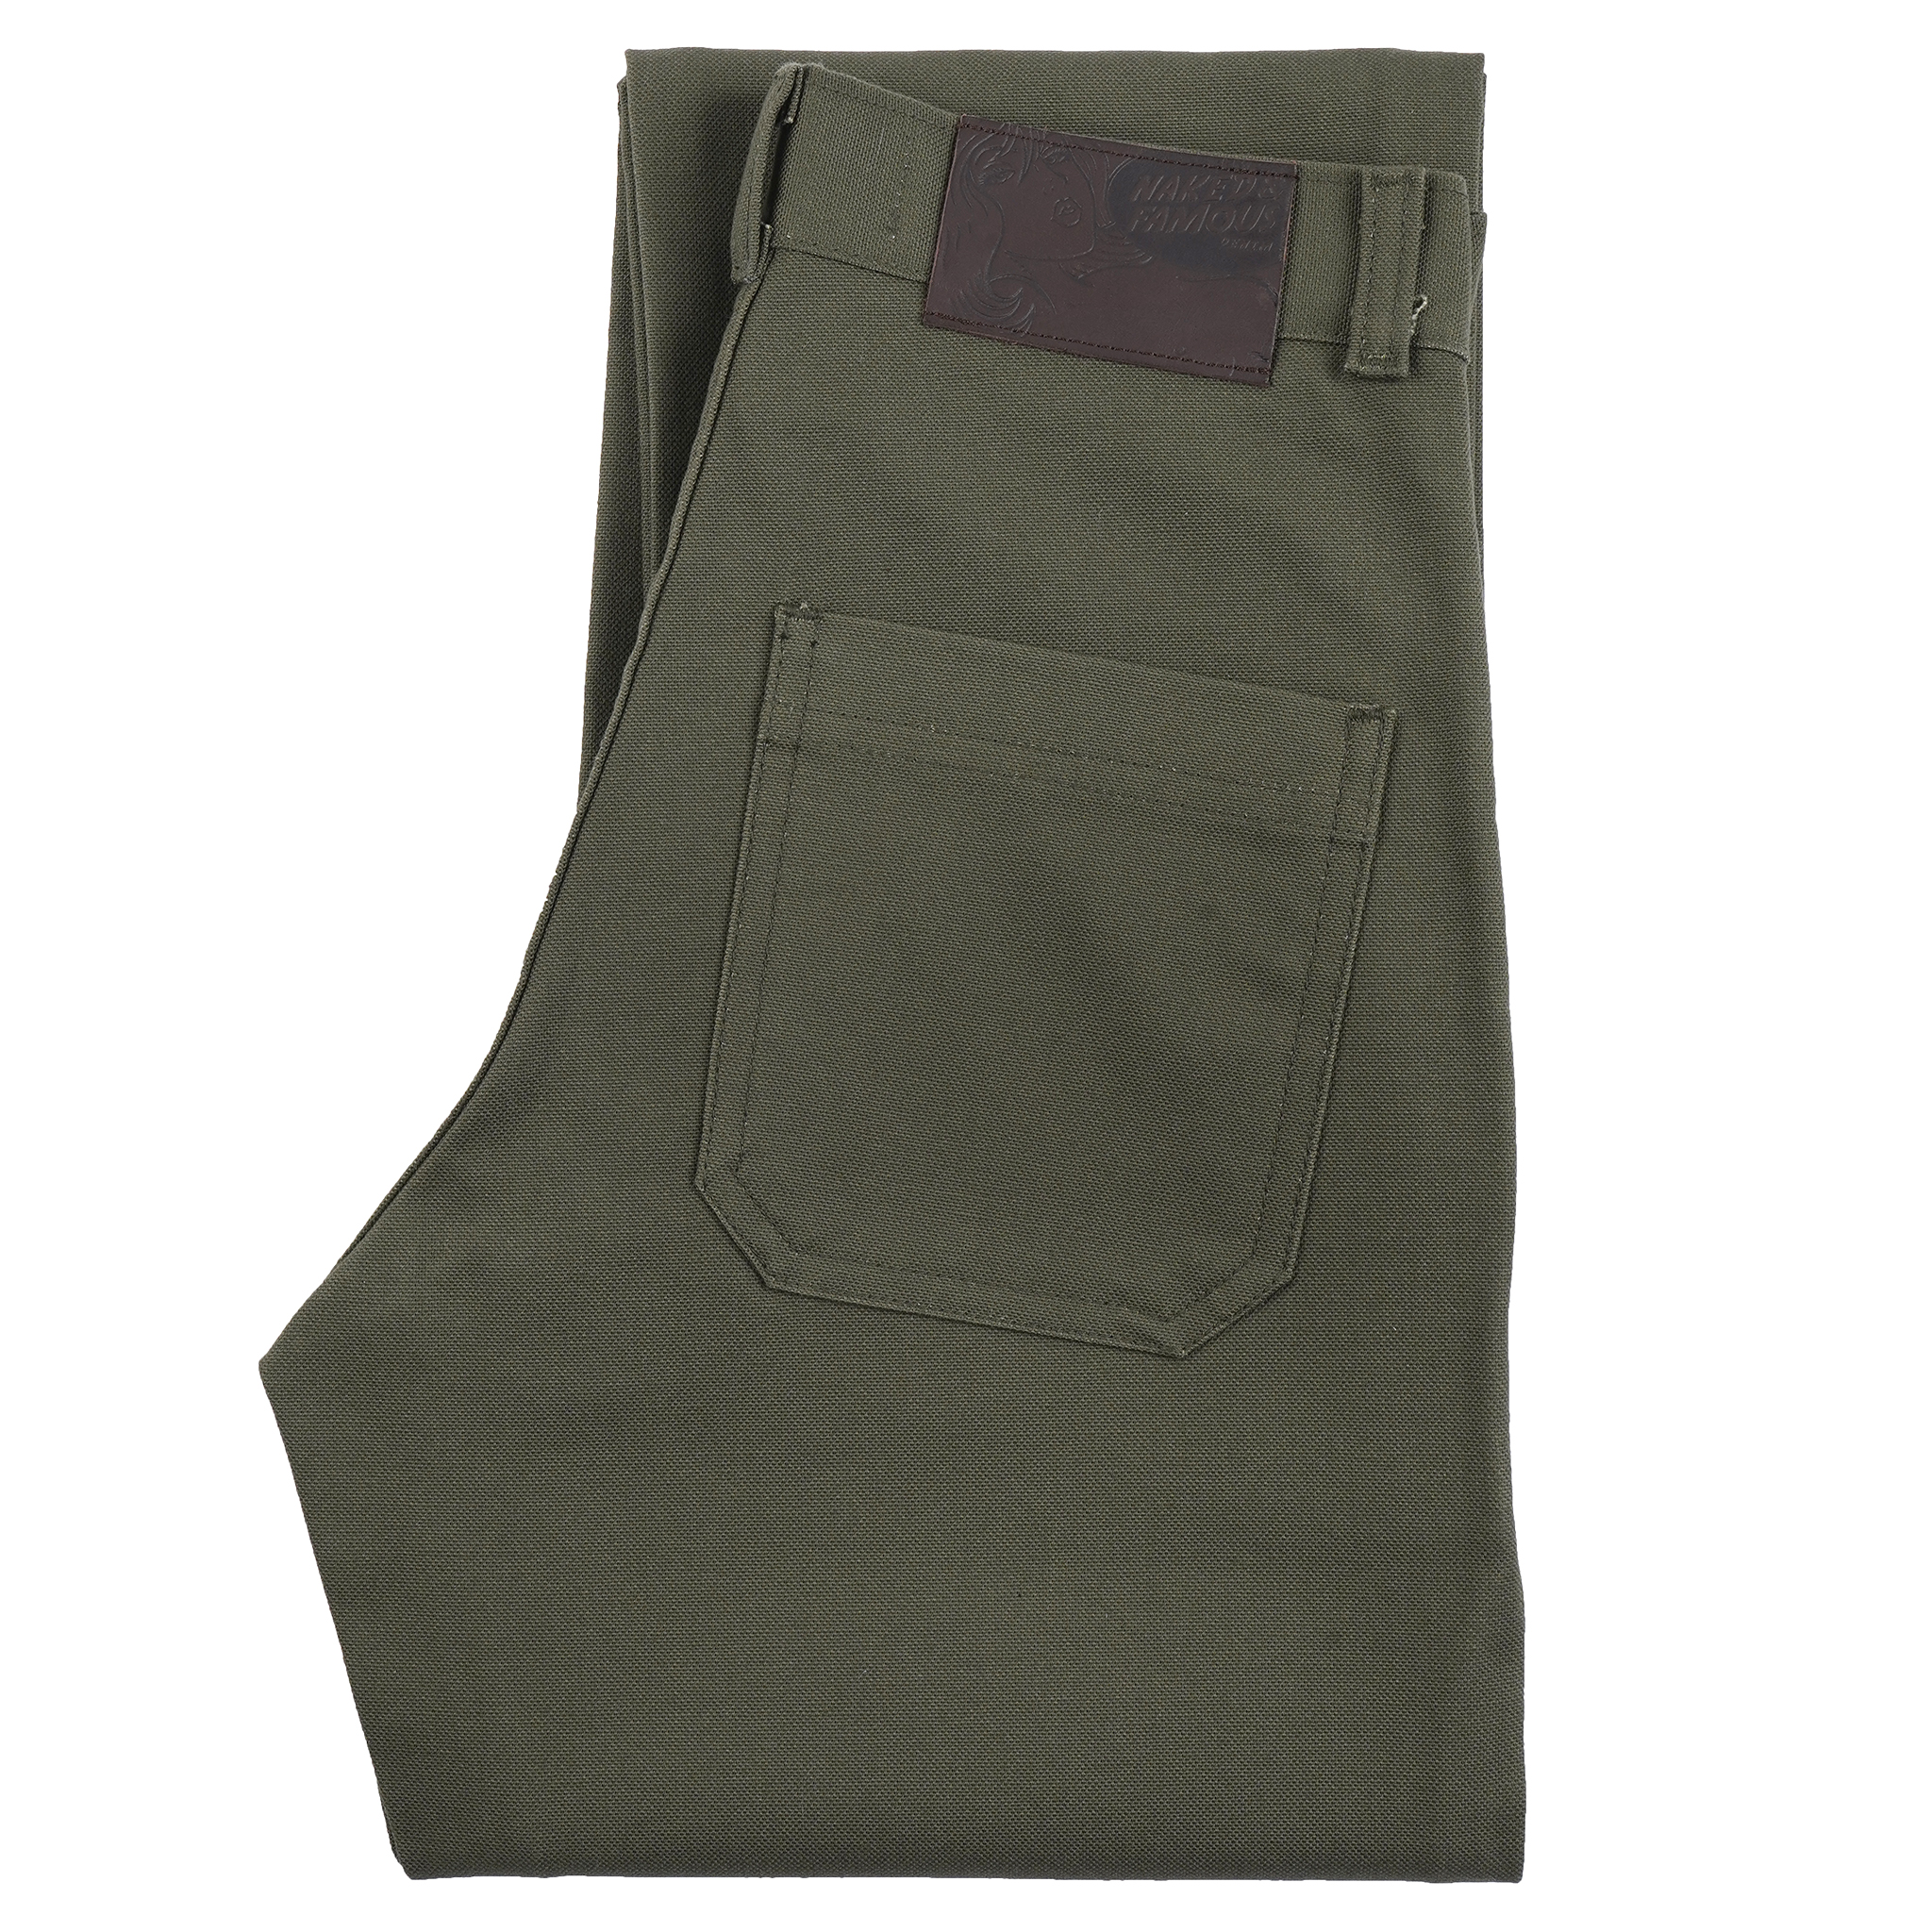 Women's Fatigue Pant Green Canvas - folded